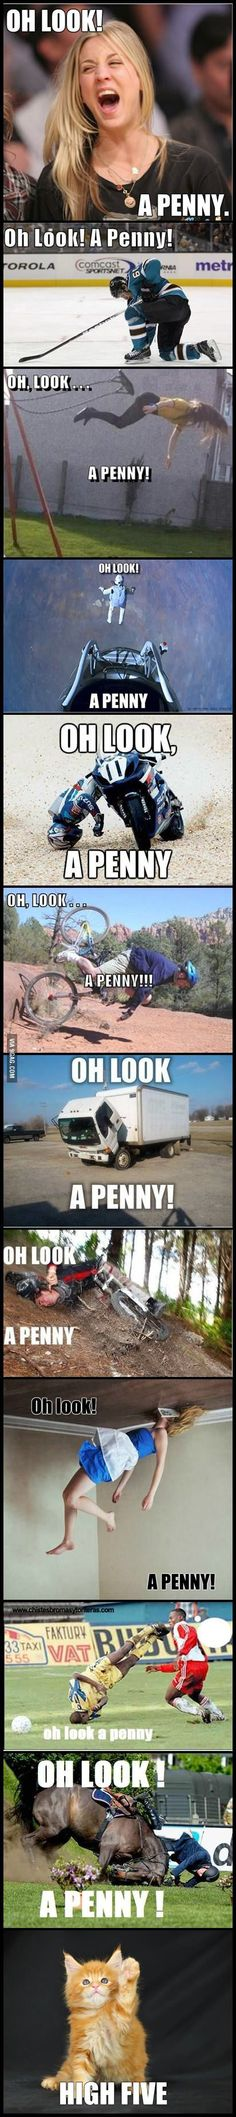 Oh look, a penny